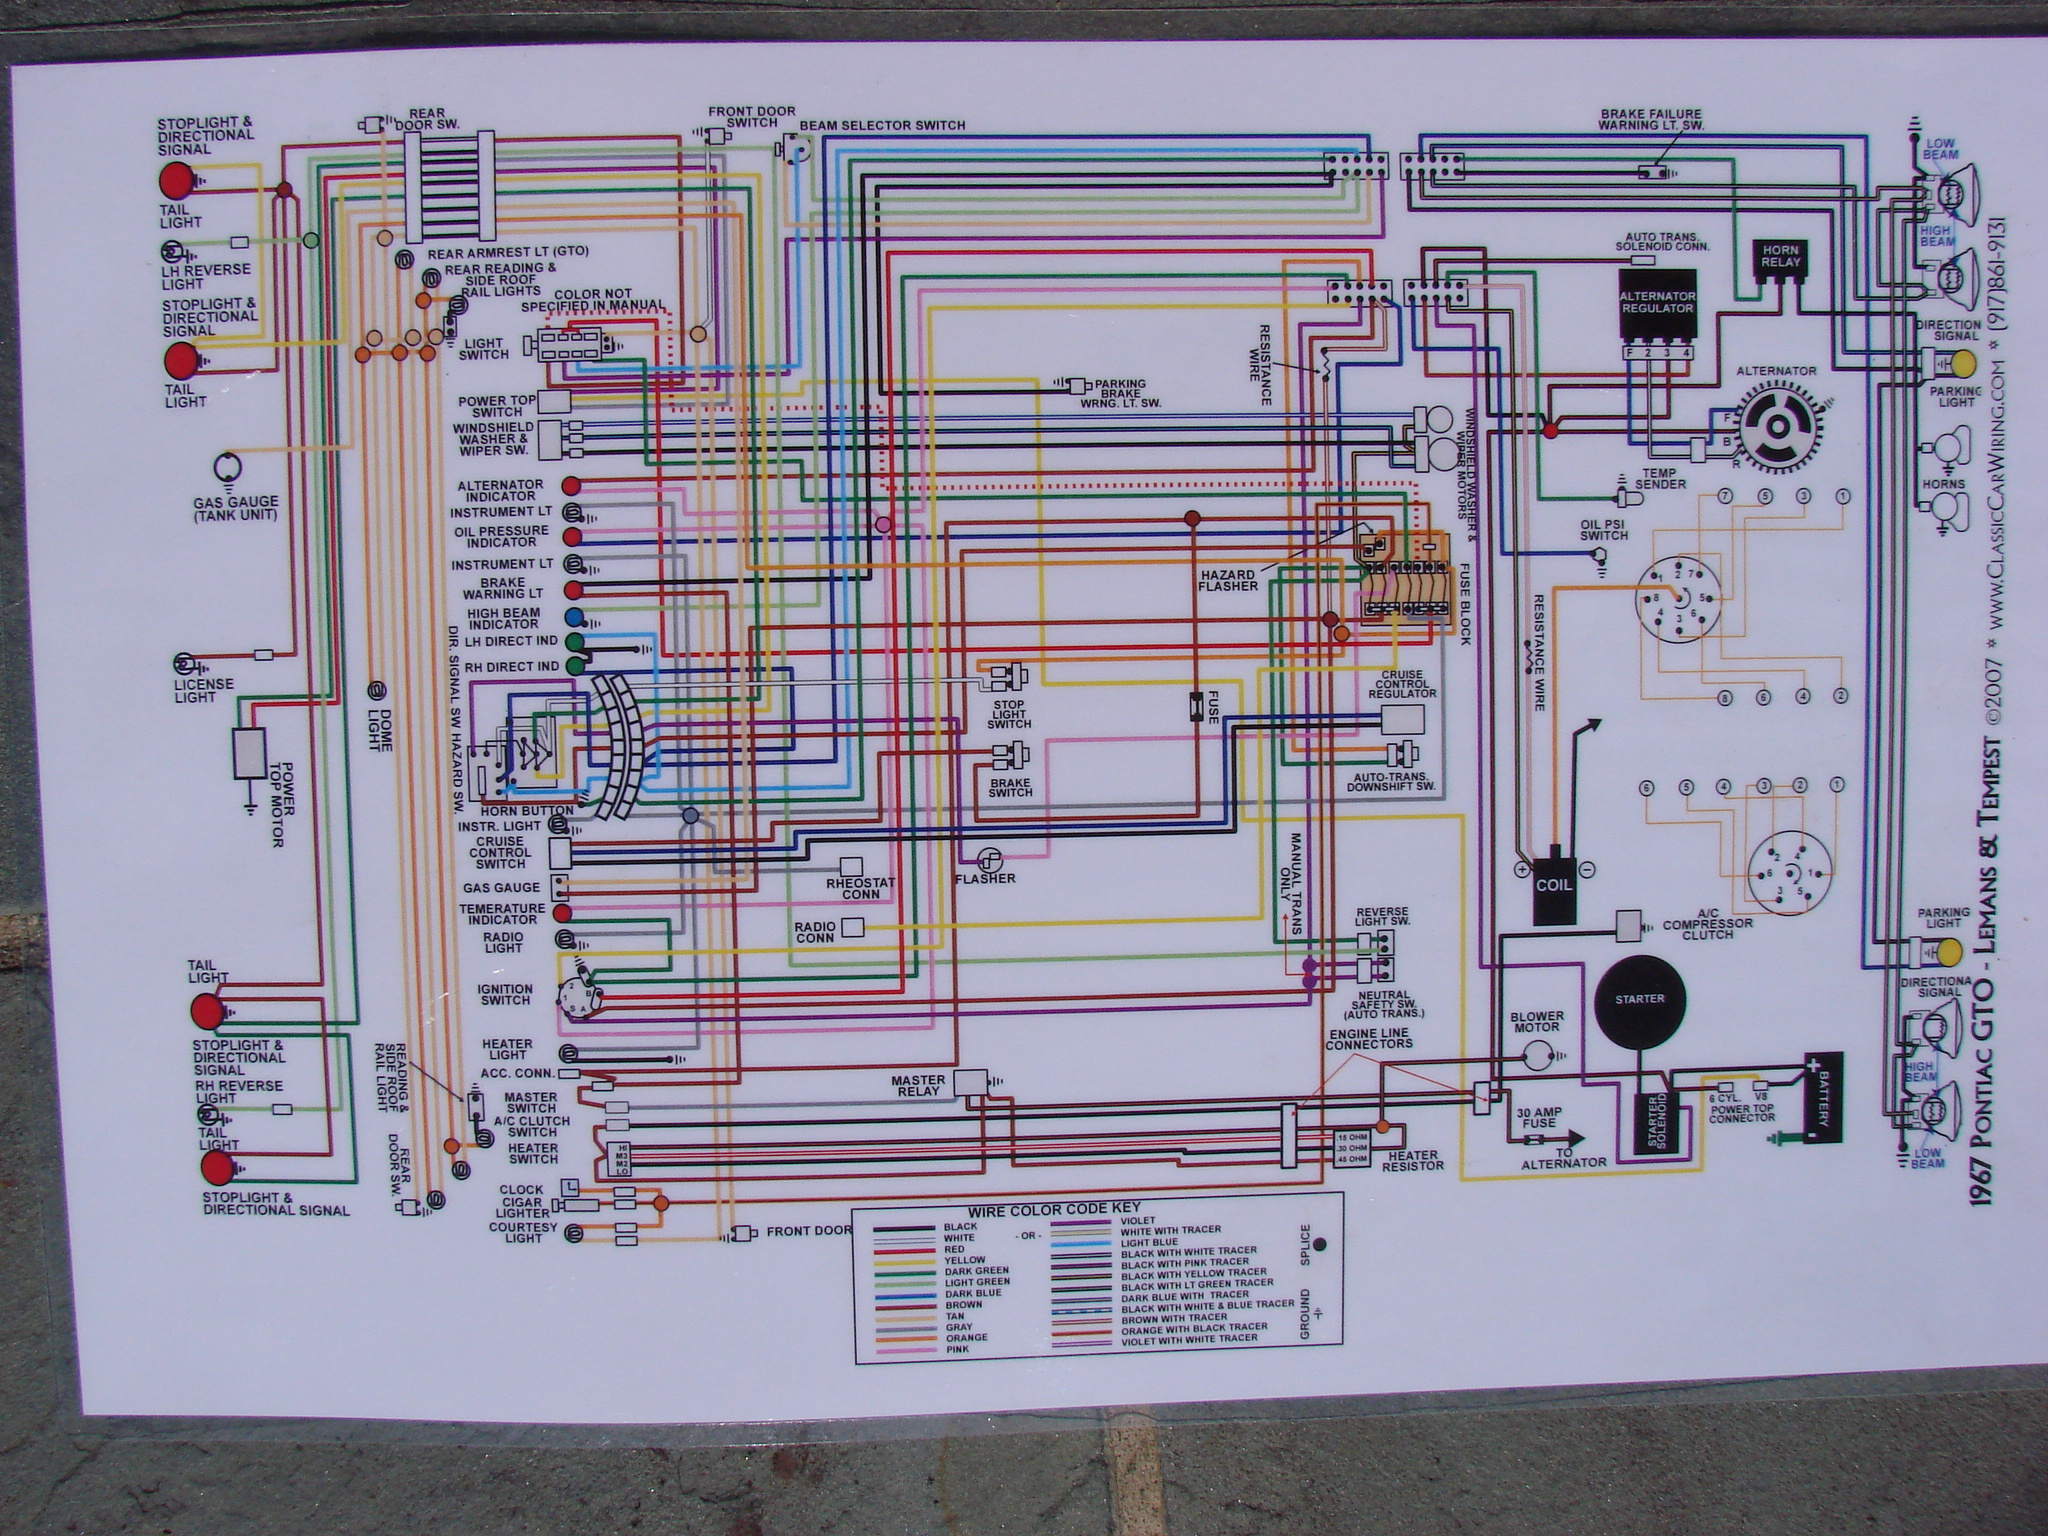 wiring diagram 2005 pontiac gto - wiring diagrams button beam-breed -  beam-breed.lamorciola.it  beam-breed.lamorciola.it